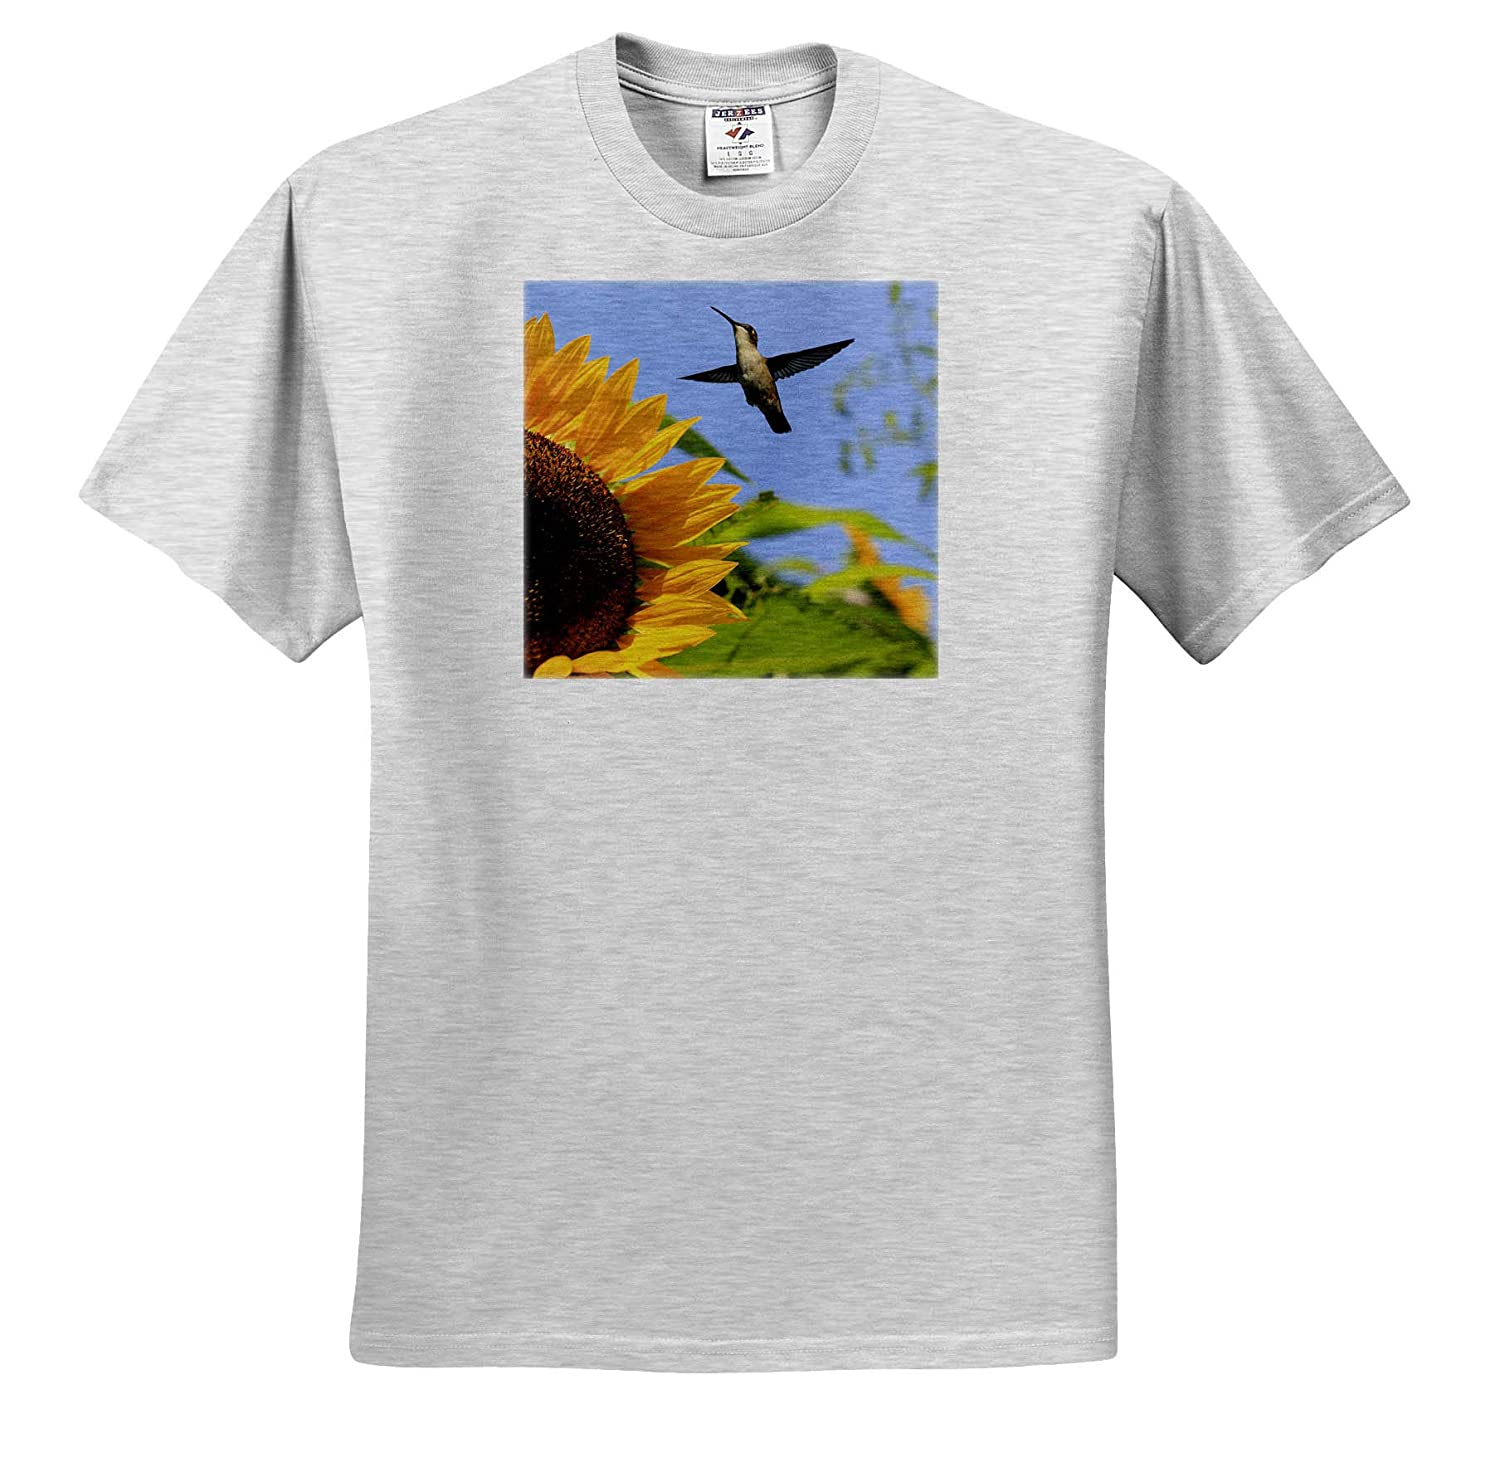 - T-Shirts 3dRose Stamp City Nature Photo of a Ruby Throated Hummingbird Flying by a Mammoth Sunflower